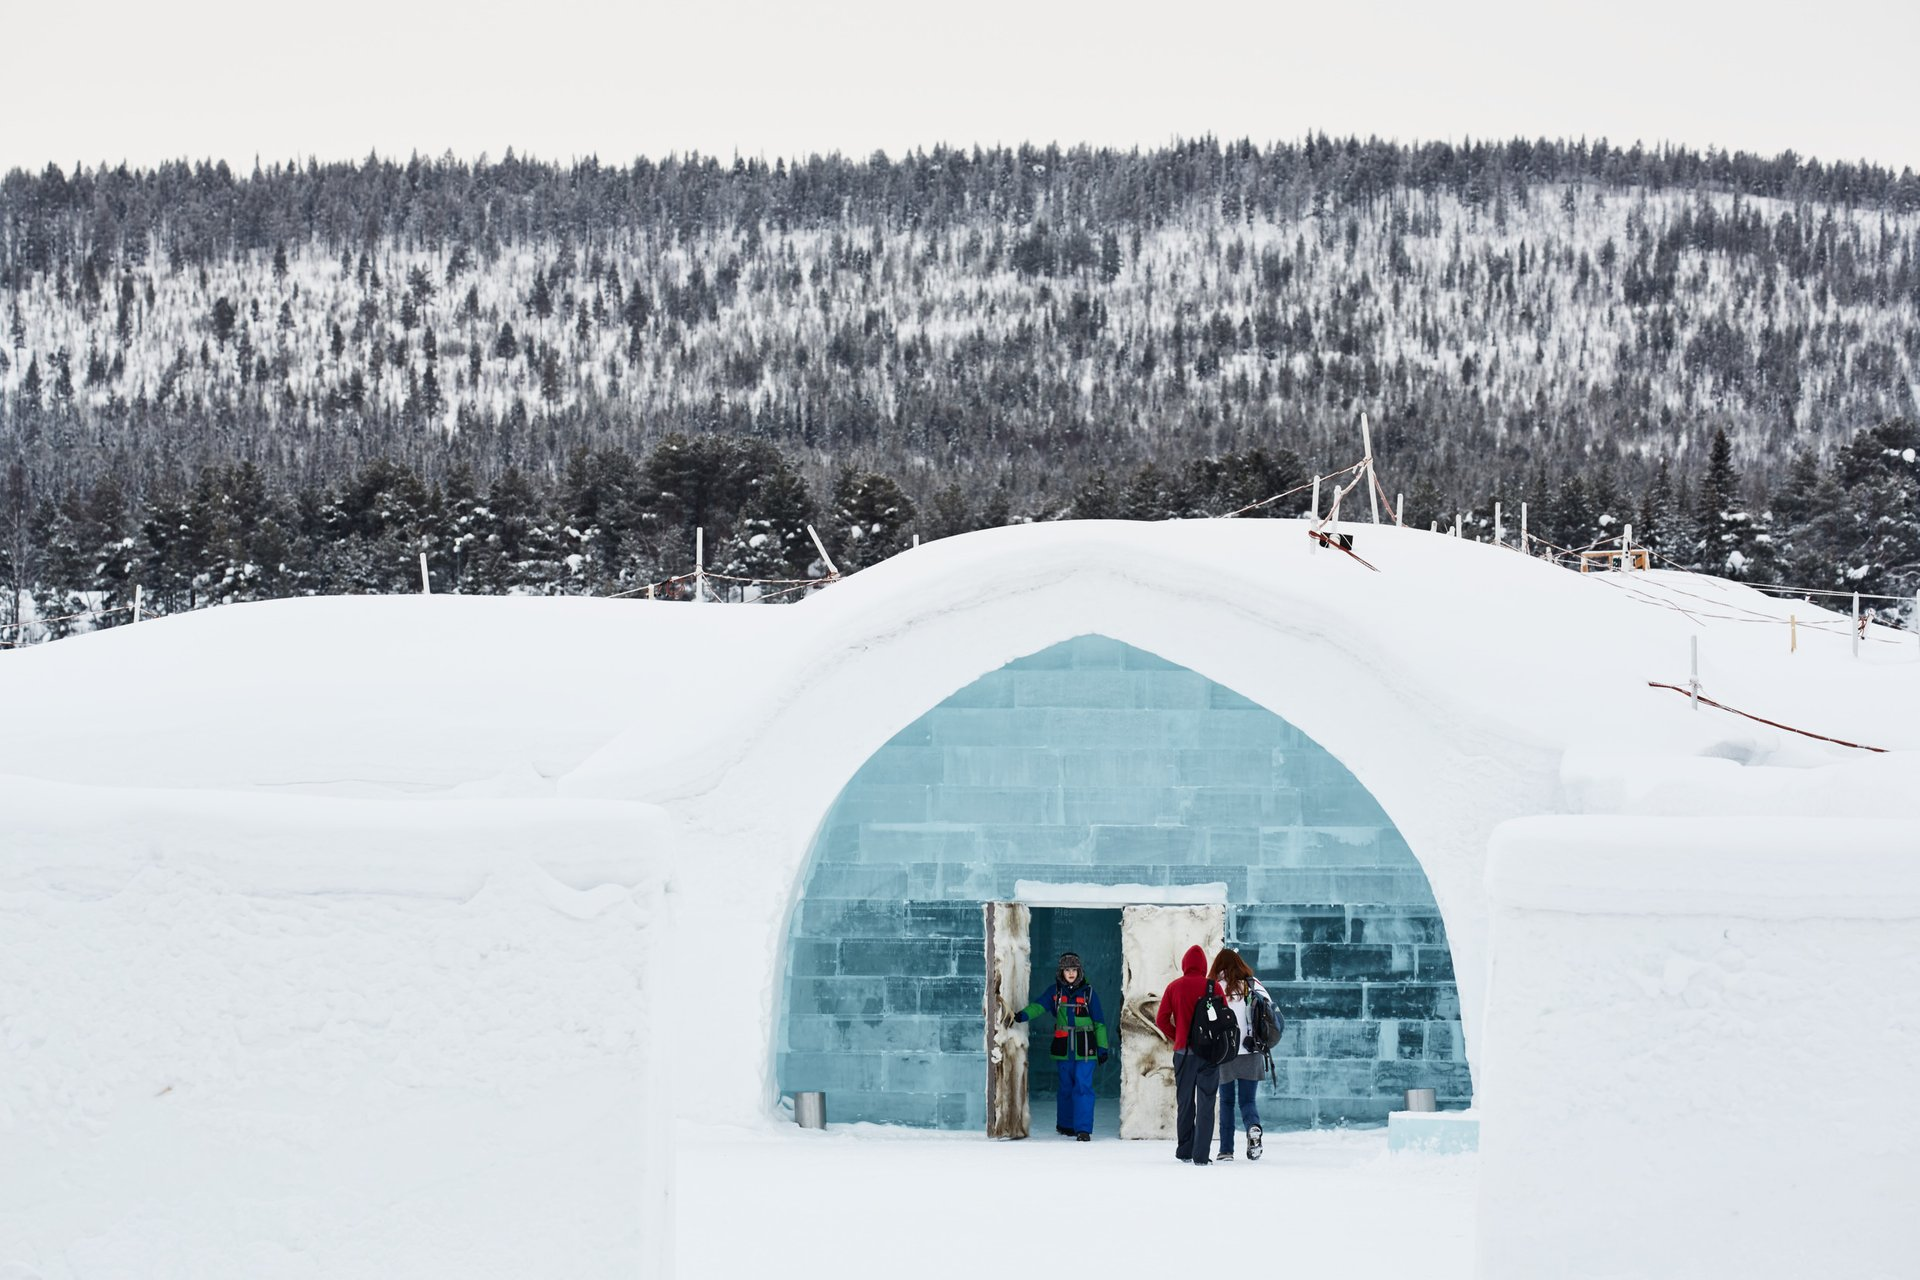 Ice Hotel in Sweden 2020 - Best Time